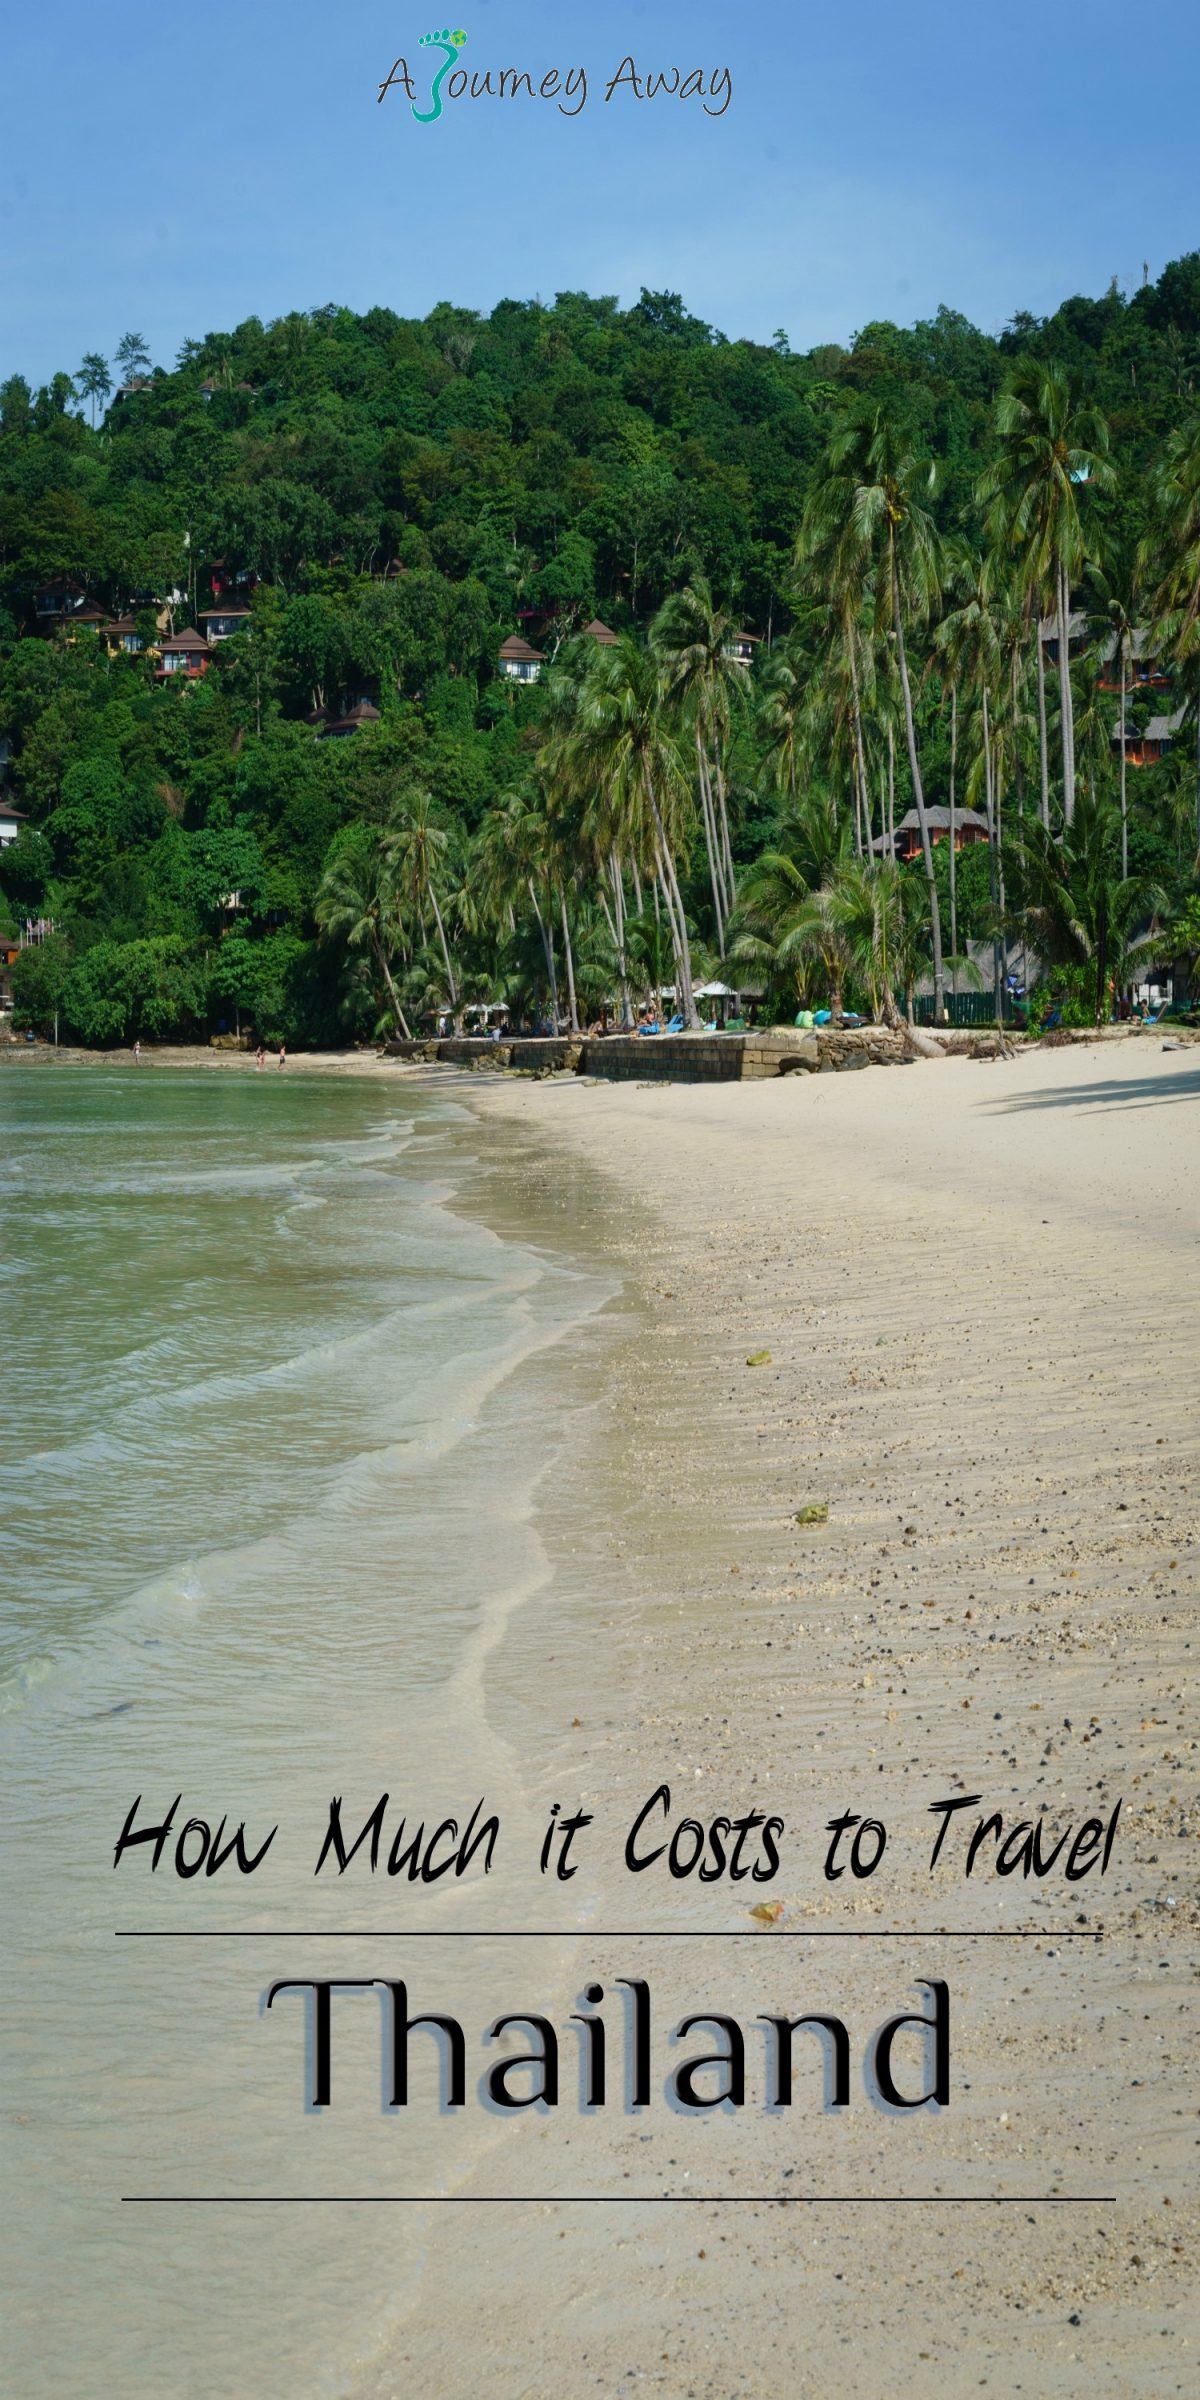 Travel Budget - 1 Month in Thailand | A Journey Away travel blog